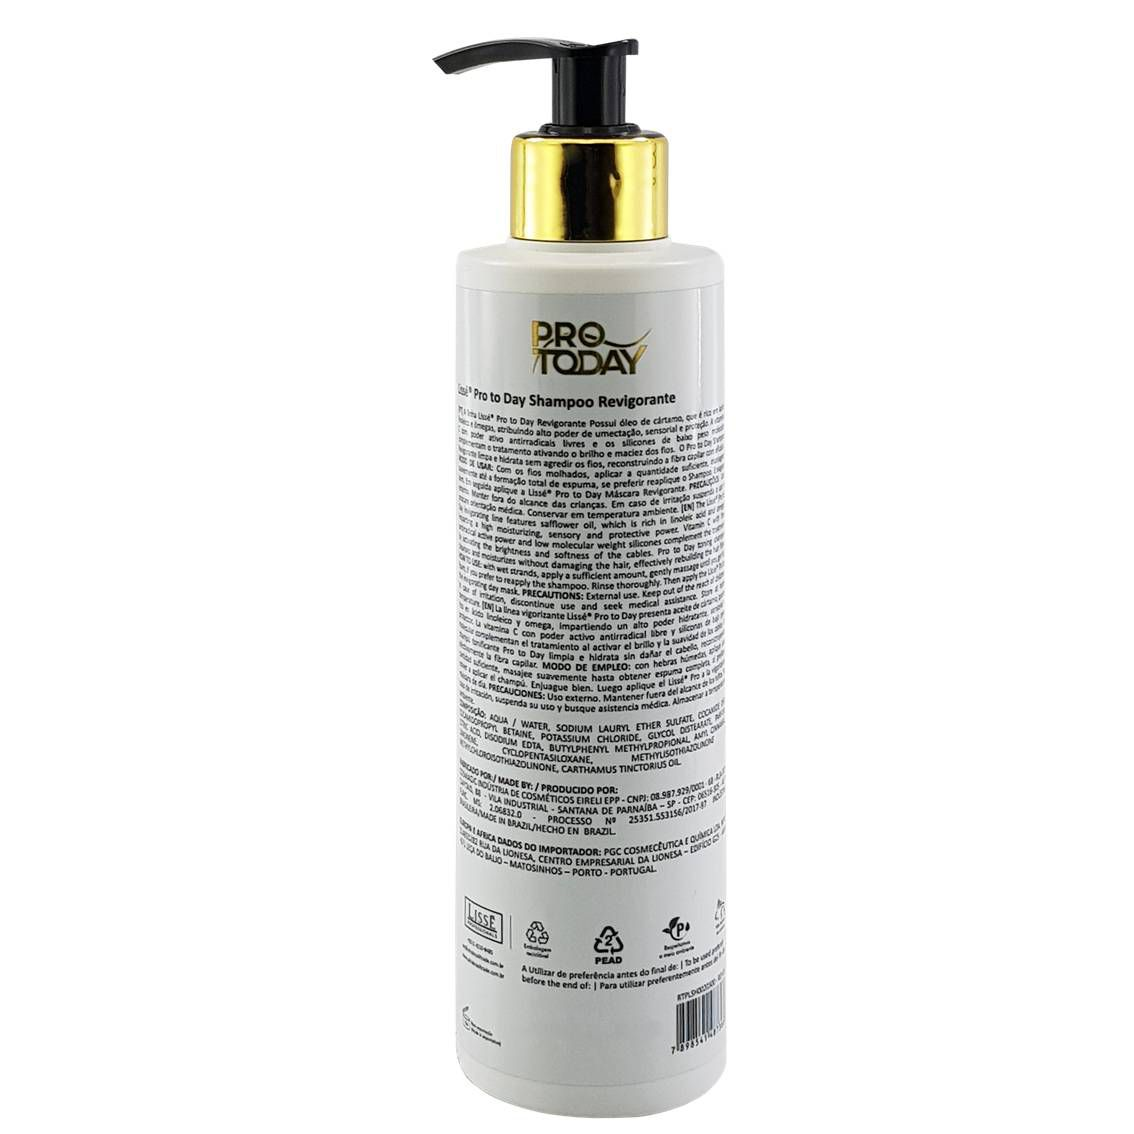 Shampoo Revigorante PRO TODAY Lissé 300 ml